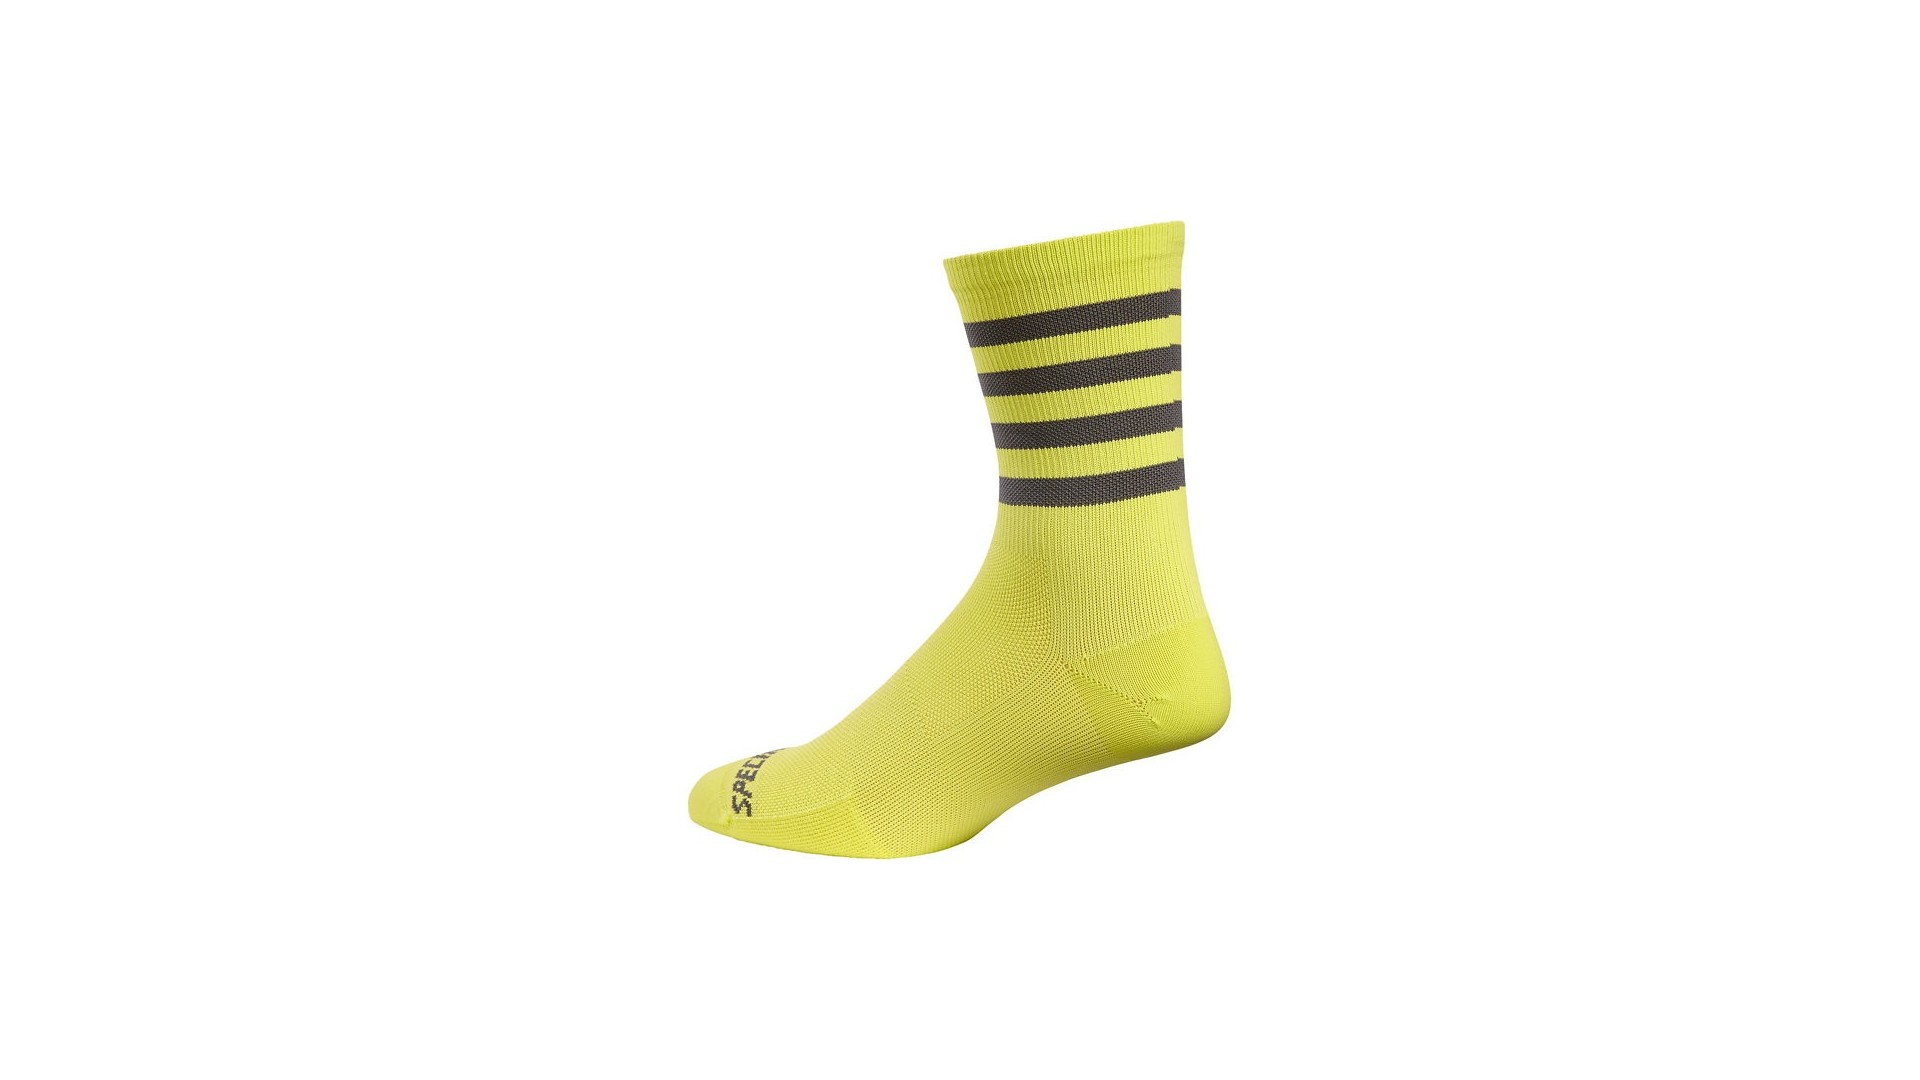 Calcetines Carretera Specialized Tall Limon 1 IBKBike.es